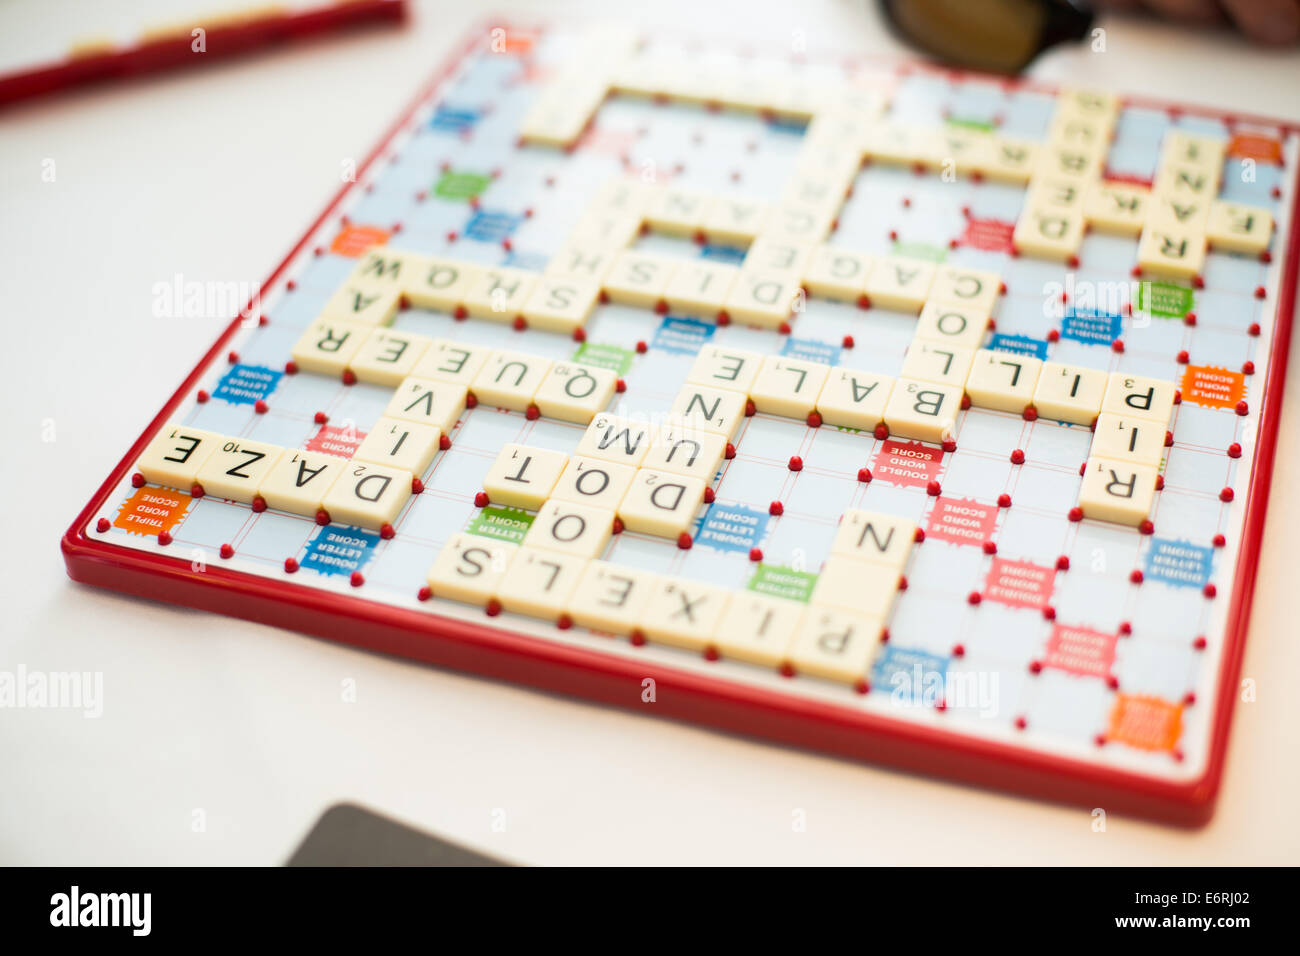 Scrabble Board Stock Photos & Scrabble Board Stock Images